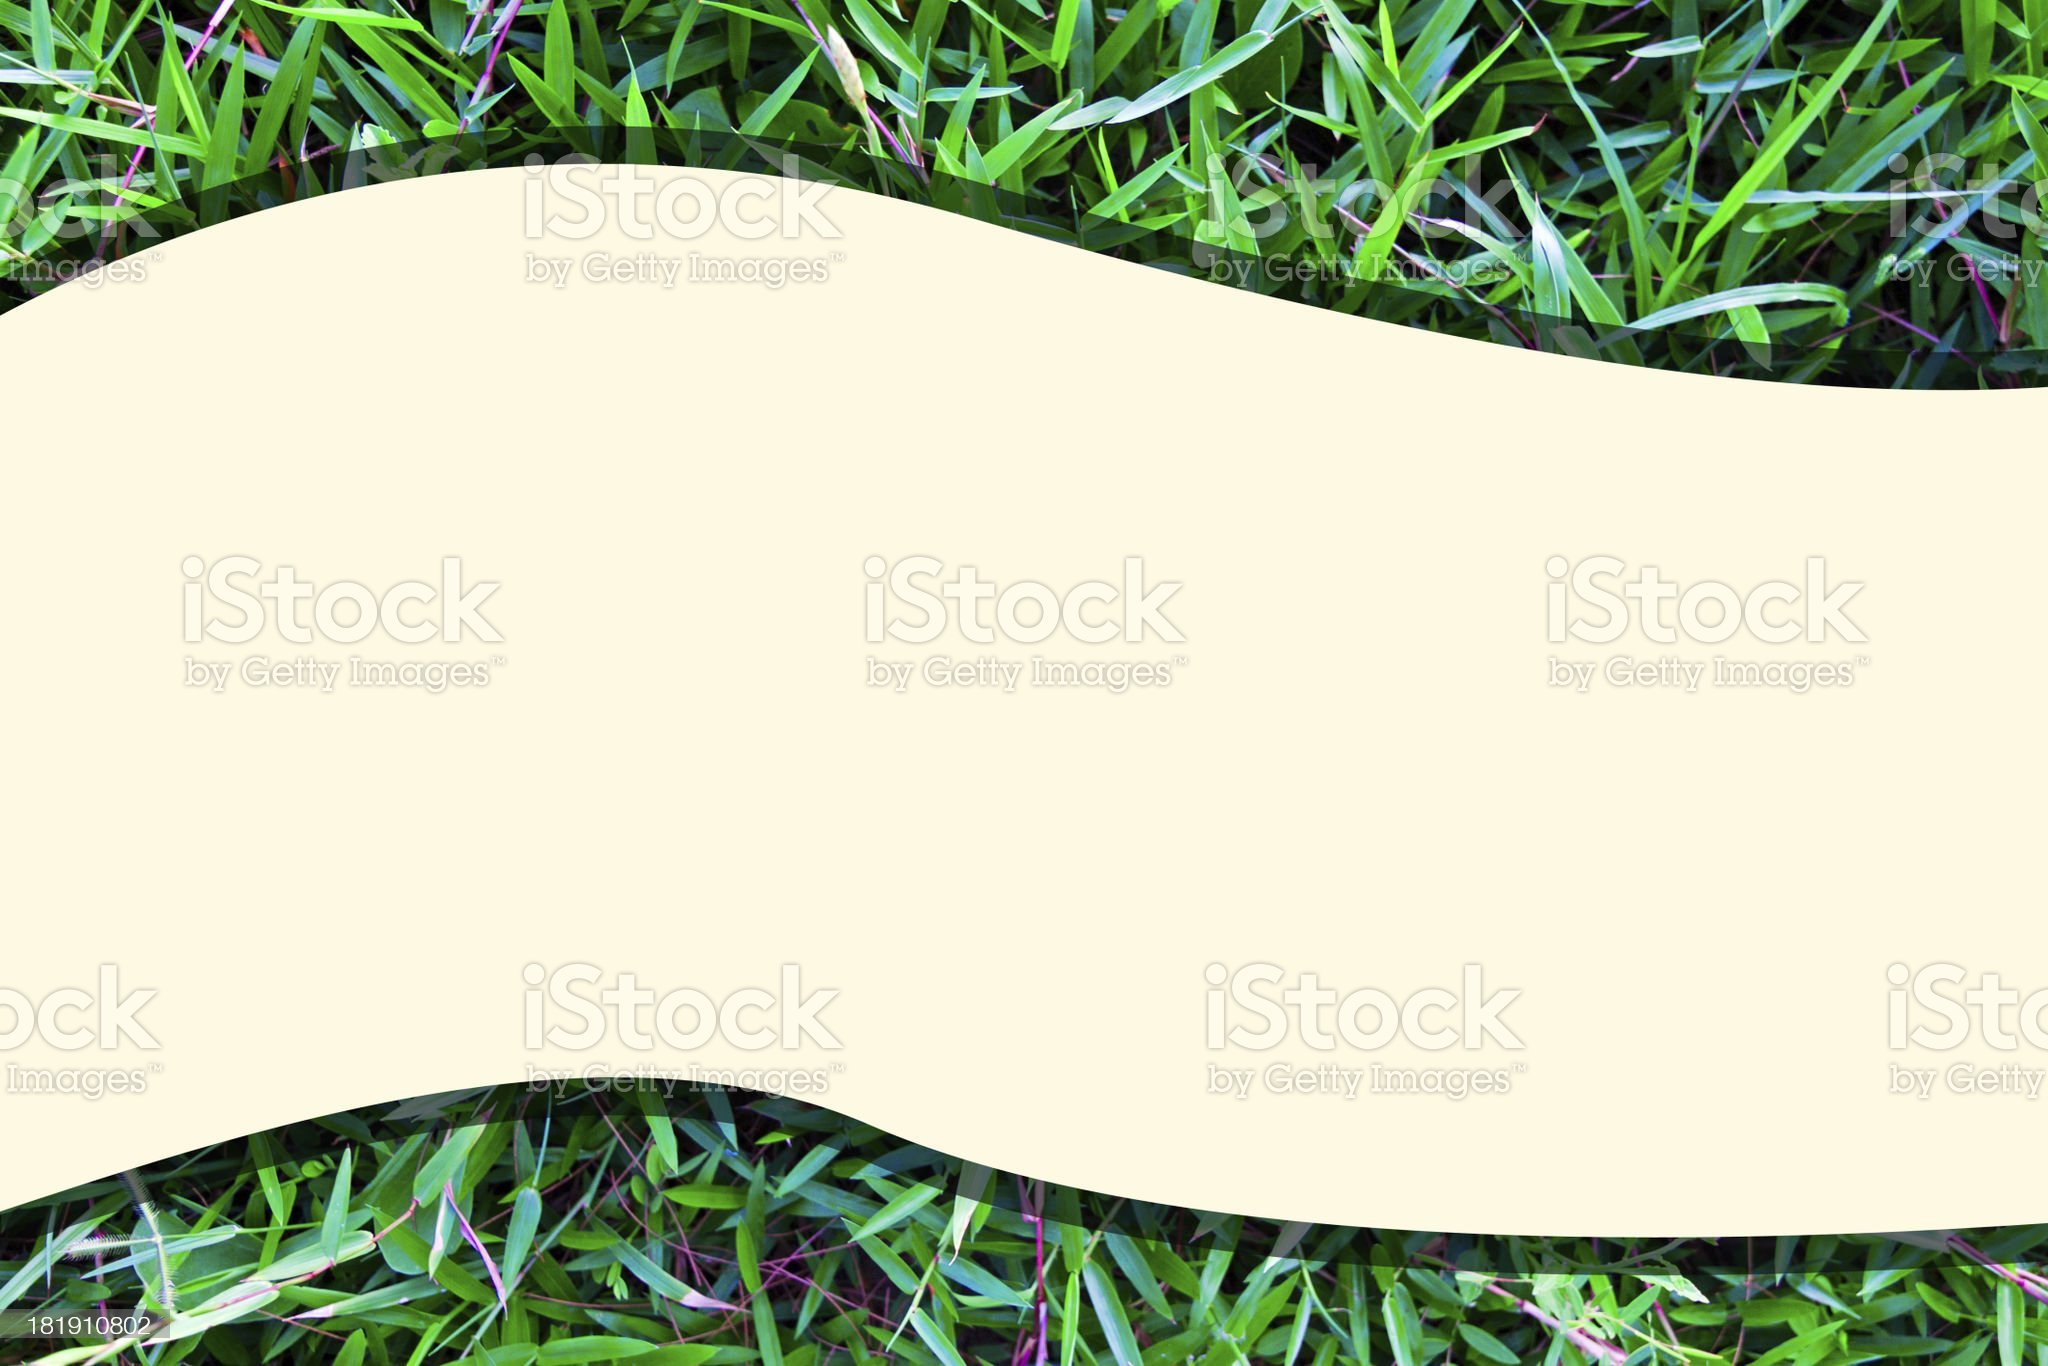 Grass background layout royalty-free stock photo